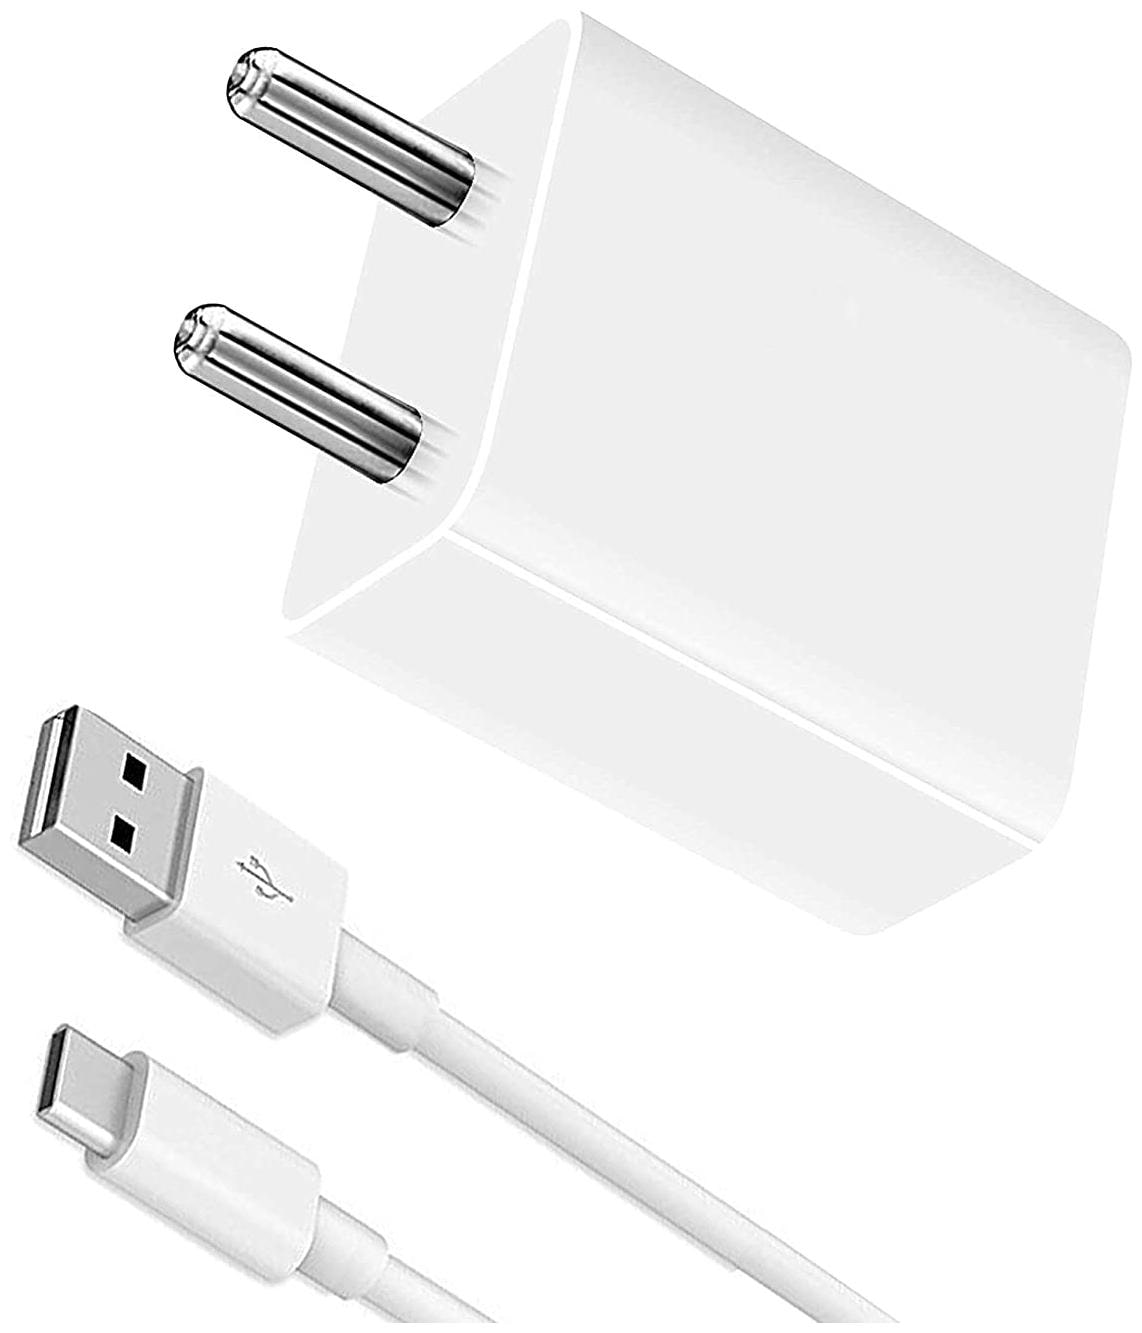 S4 Adaptive Charger 2.1 A Wall Charger   1 USB Port